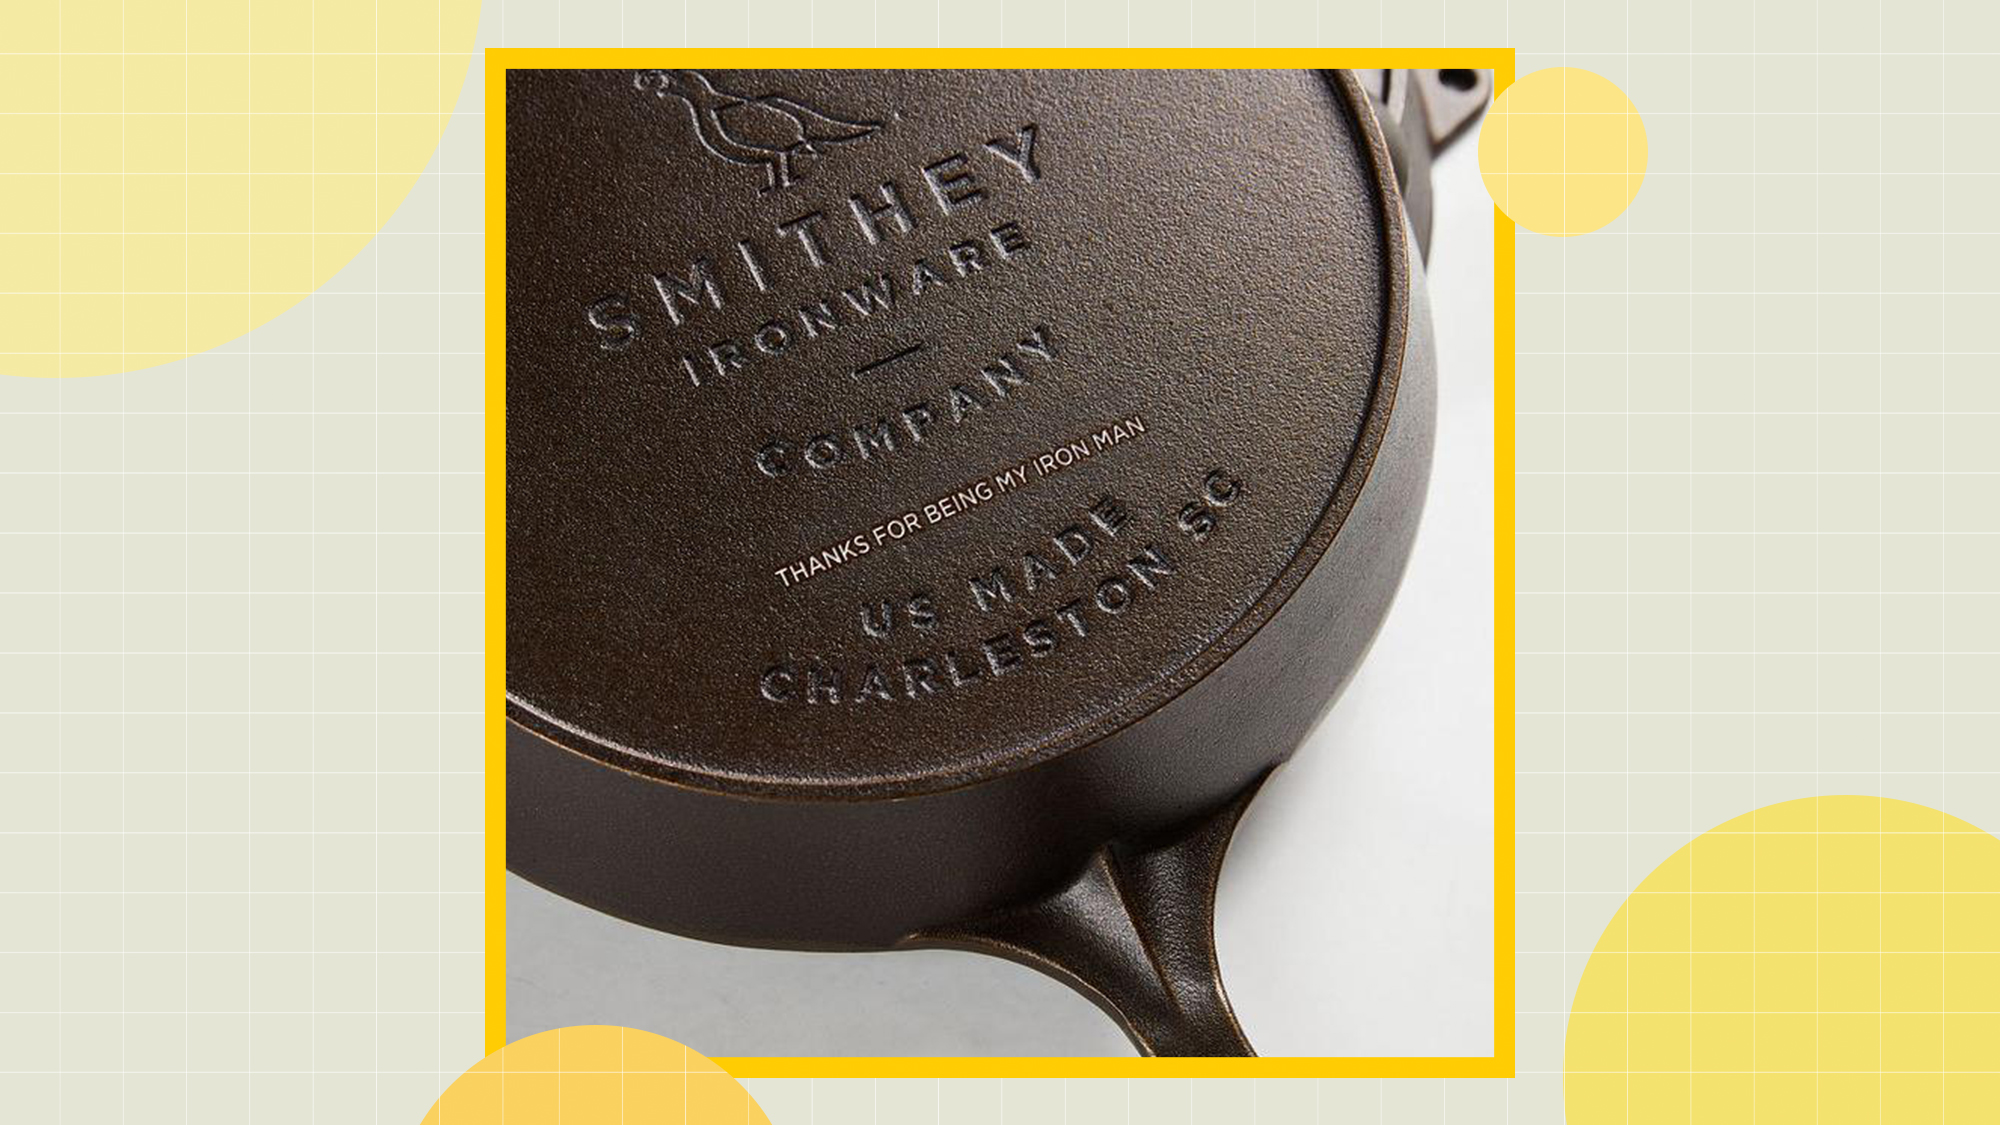 A detail shot of the engraving on a Smithey NO. 10 Cast Iron Skillet